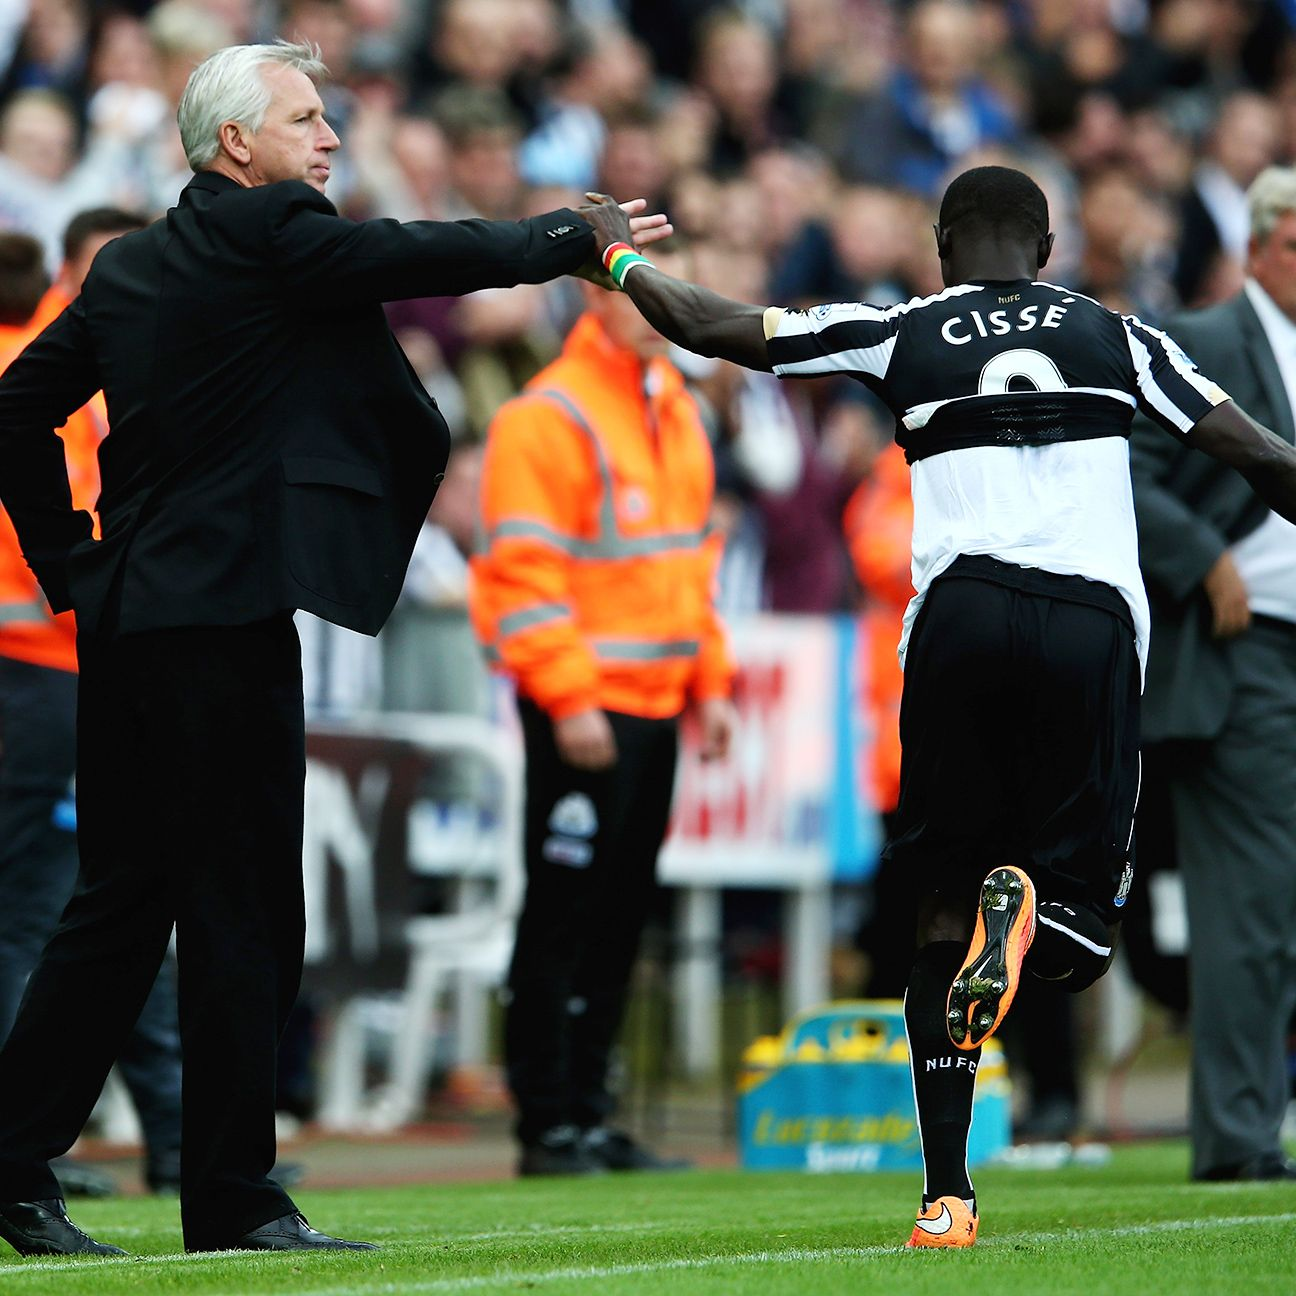 Papiss Cisse made sure he acknowledged under-fire manager Alan Pardew following his first goal on Saturday.